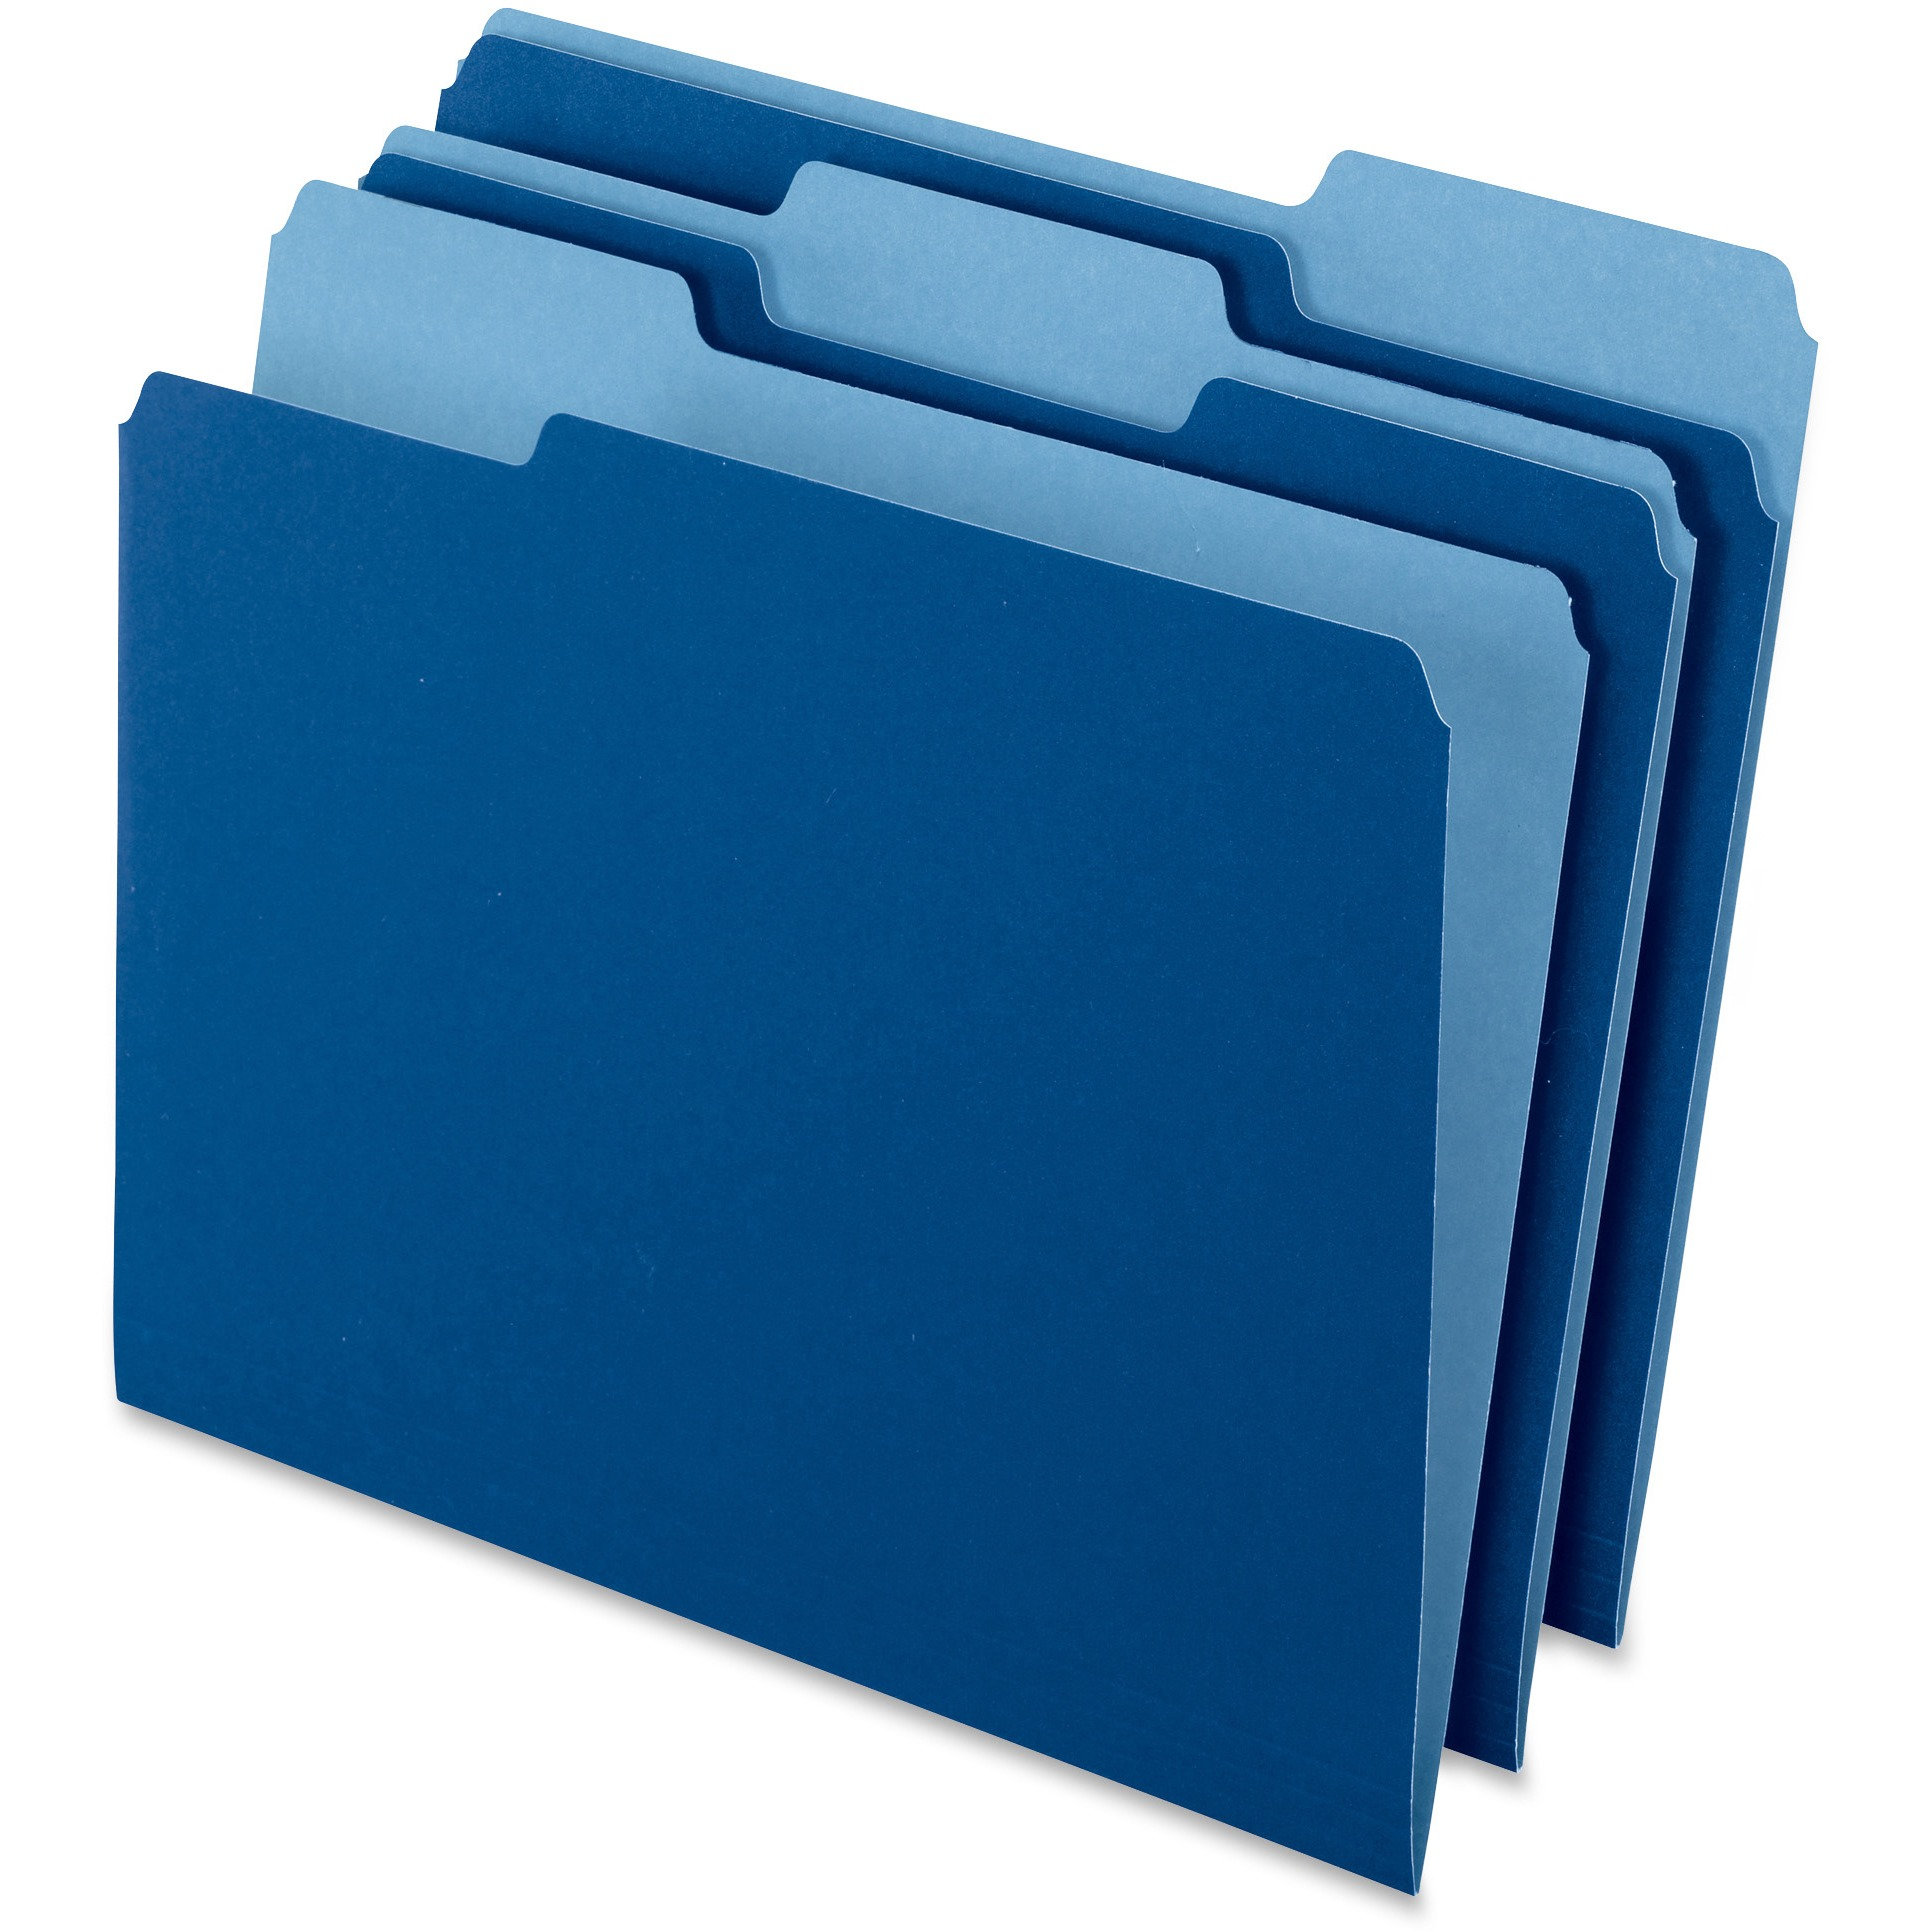 Pendaflex, PFX15213NAV, Two-tone Color File Folders, 100 / Box, Navy Blue